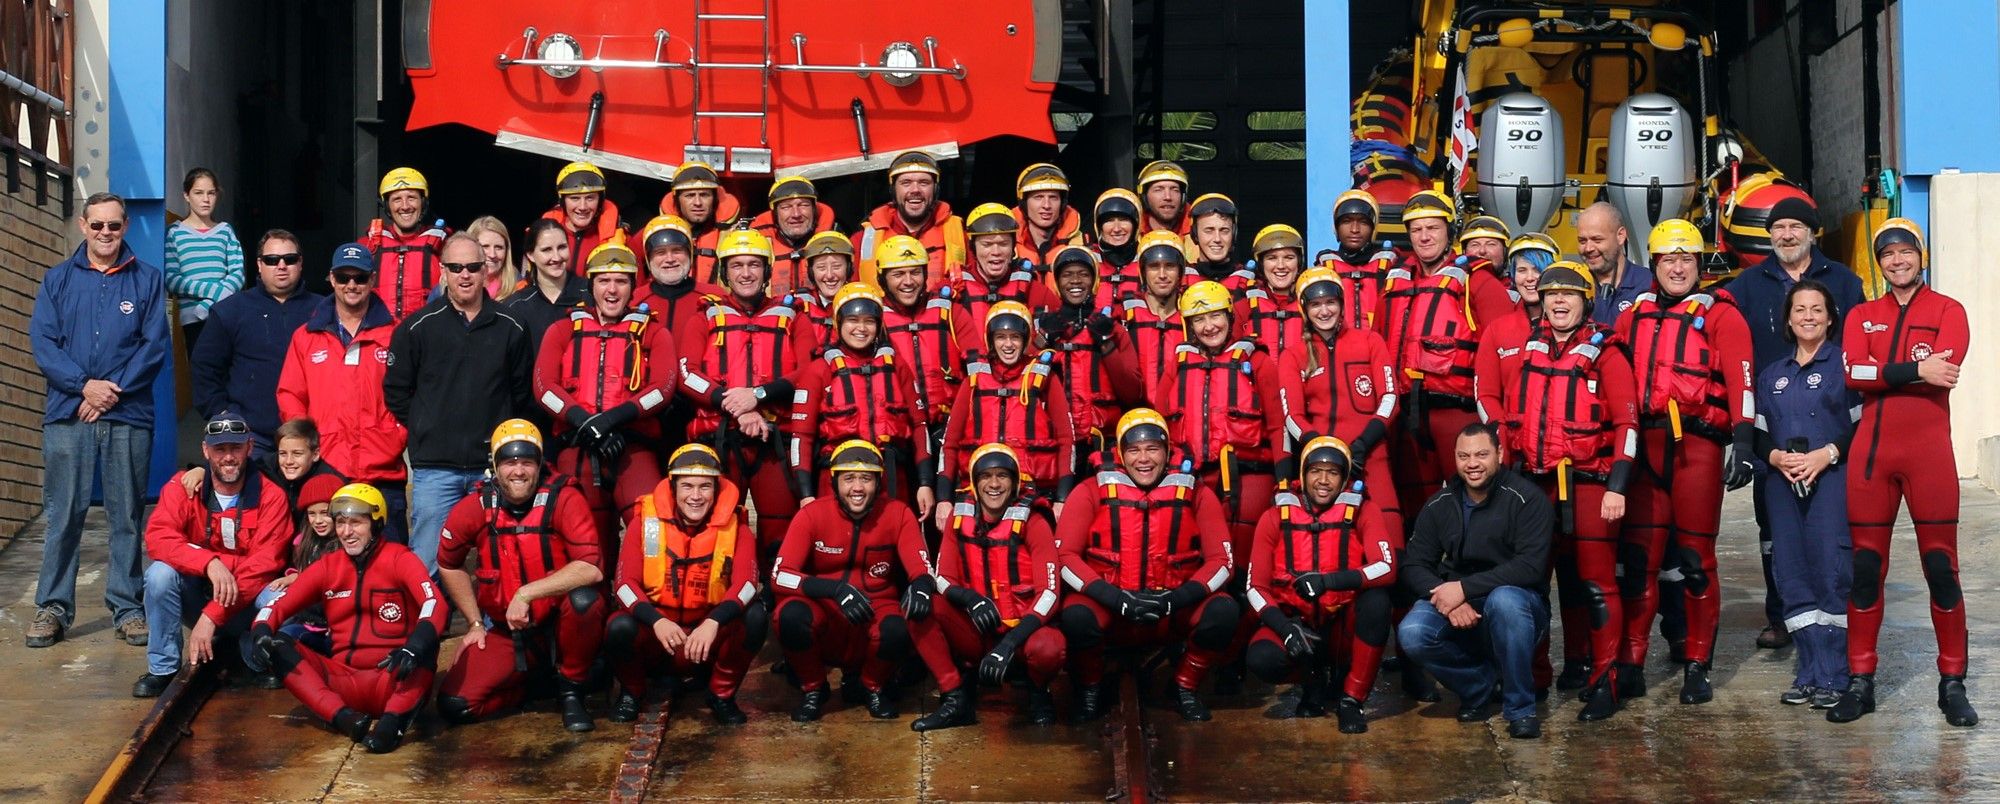 Join the Sea Rescue family Pic: Chris McCarthy/Makena